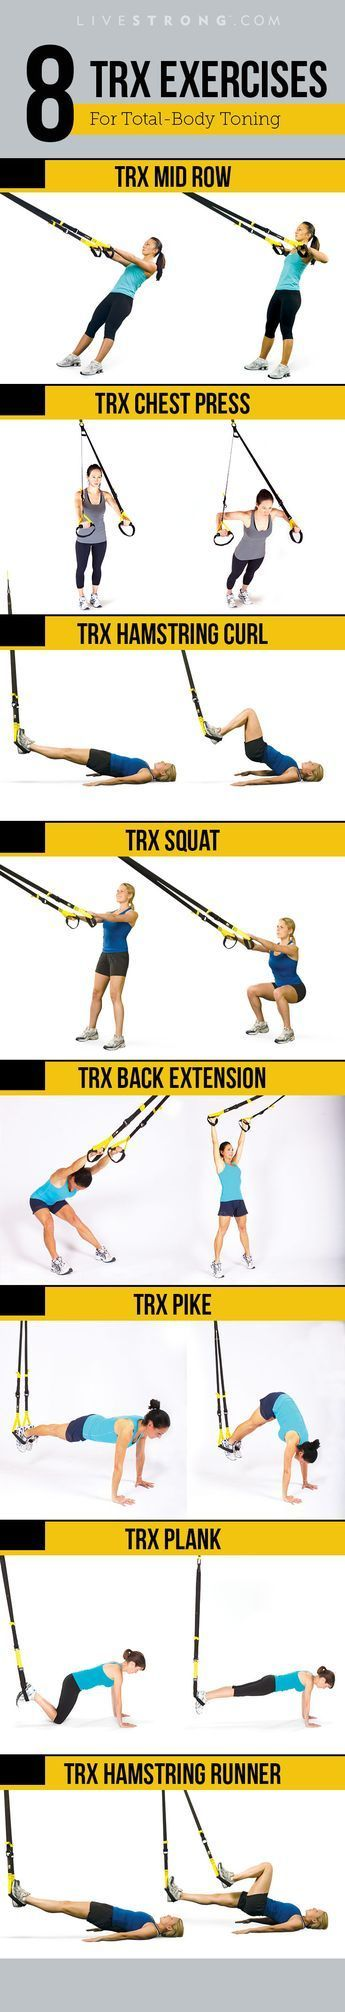 You May Have Seen Those Black And Yellow Straps Hanging From The Ceiling At Your Gym And Wondered How The Heck To Use Th Trx Workouts Fitness Body Trx Training